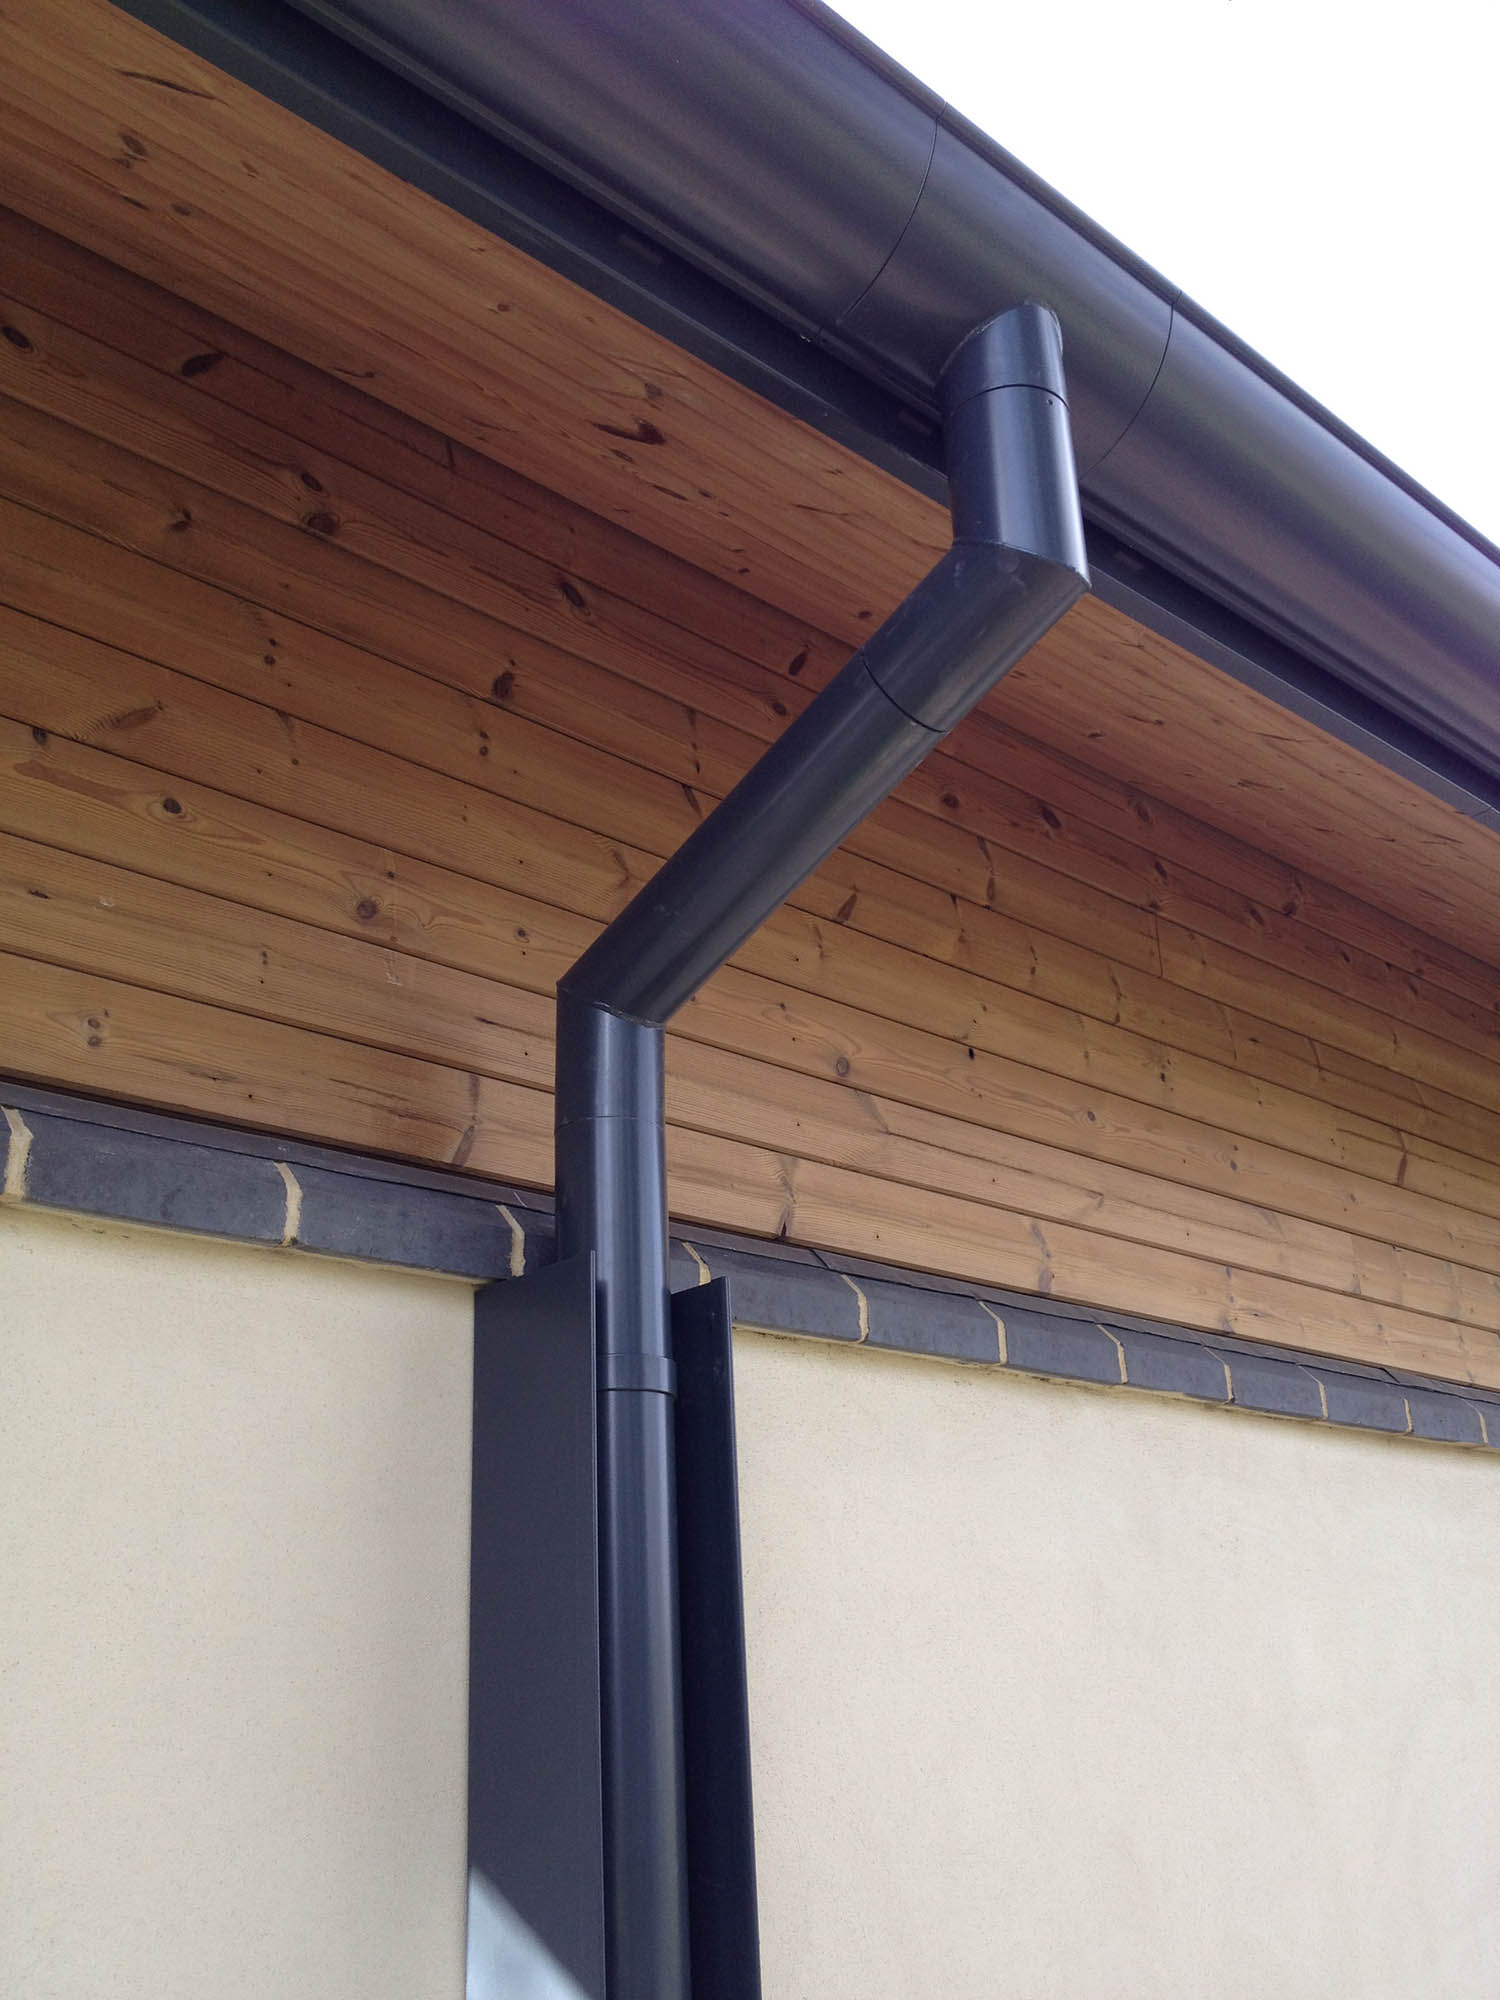 Pvc Guttering Amp Upvc Fascias Gutter Maintenance Oxford Ltd